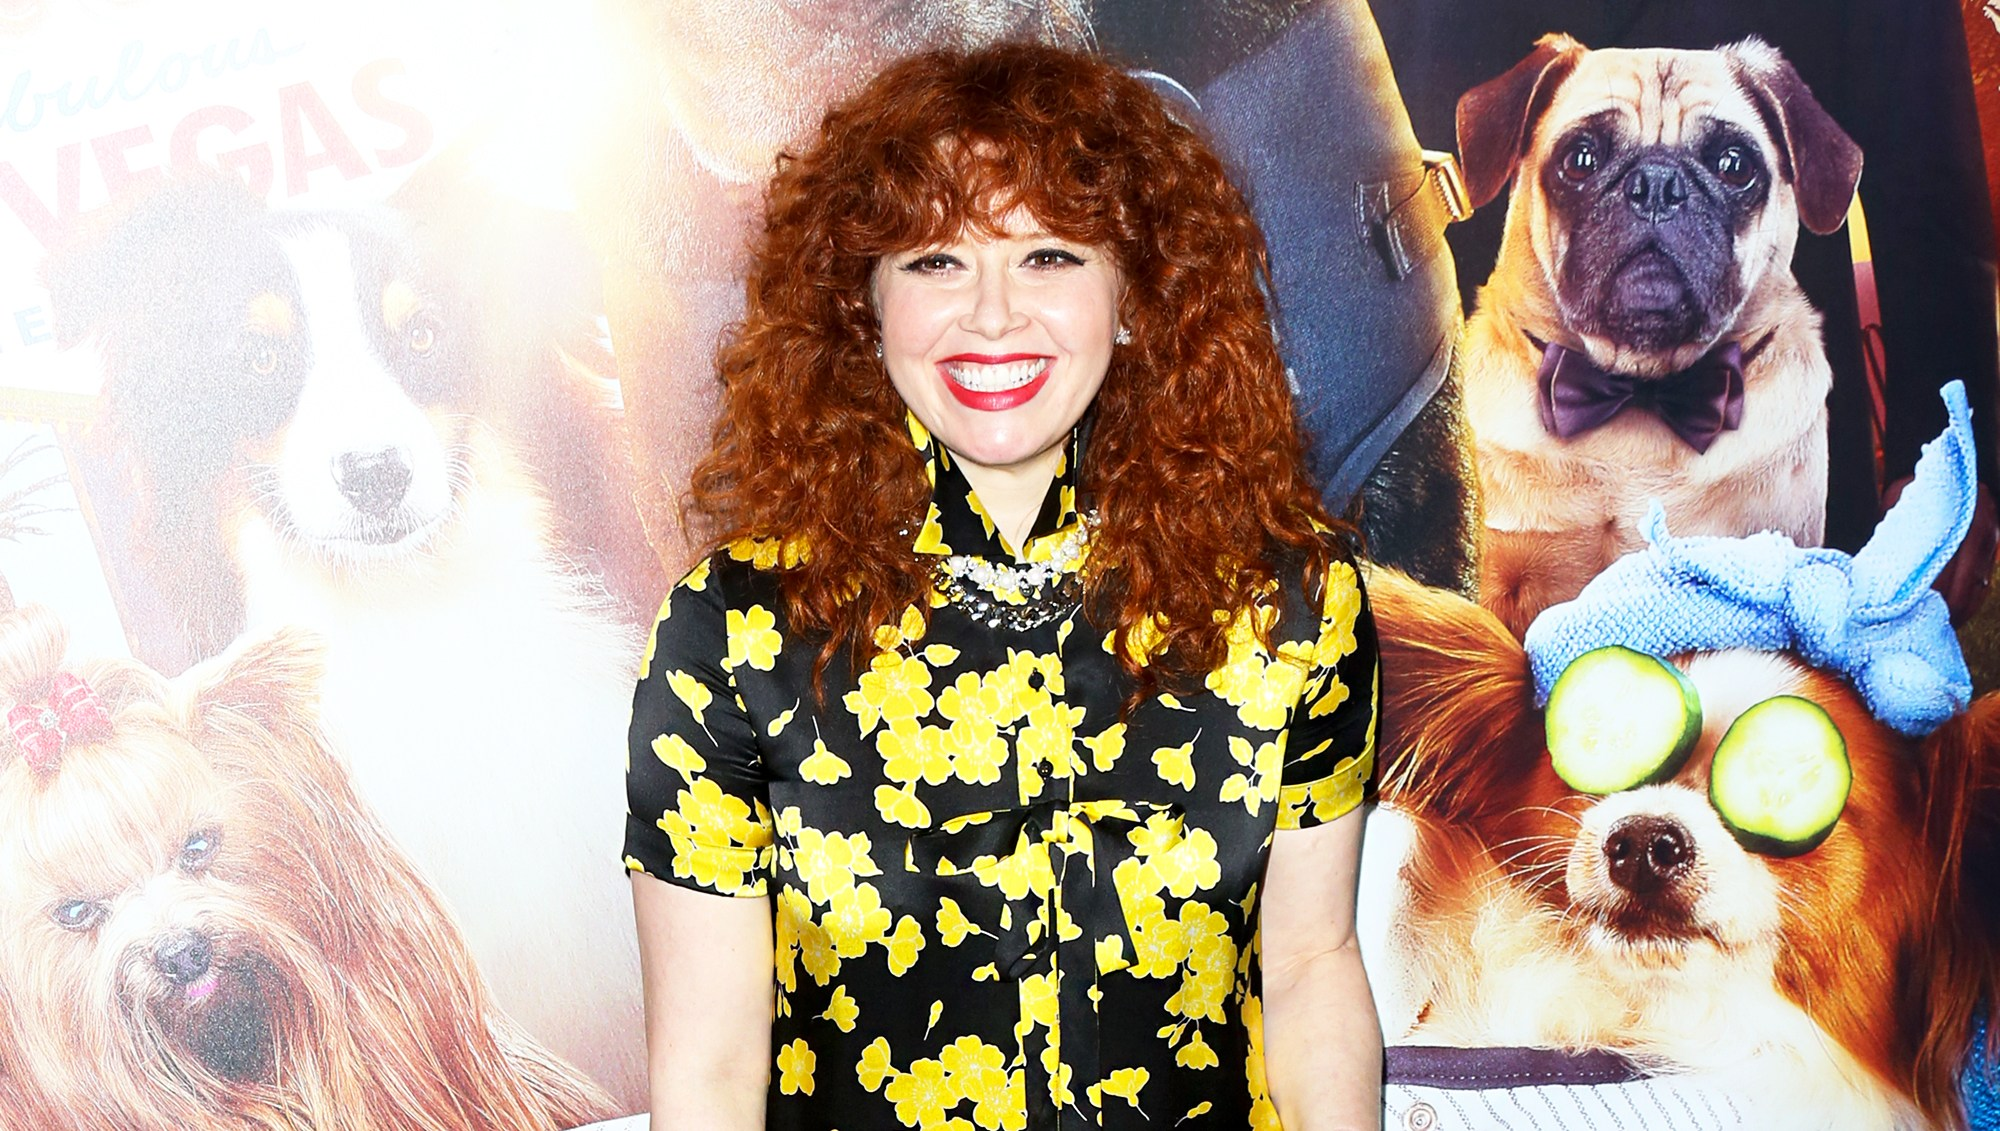 Natasha Lyonne attends the premiere of 'Show Dogs' at The TCL Chinese 6 Theatres on May 5, 2018 in Hollywood, California.